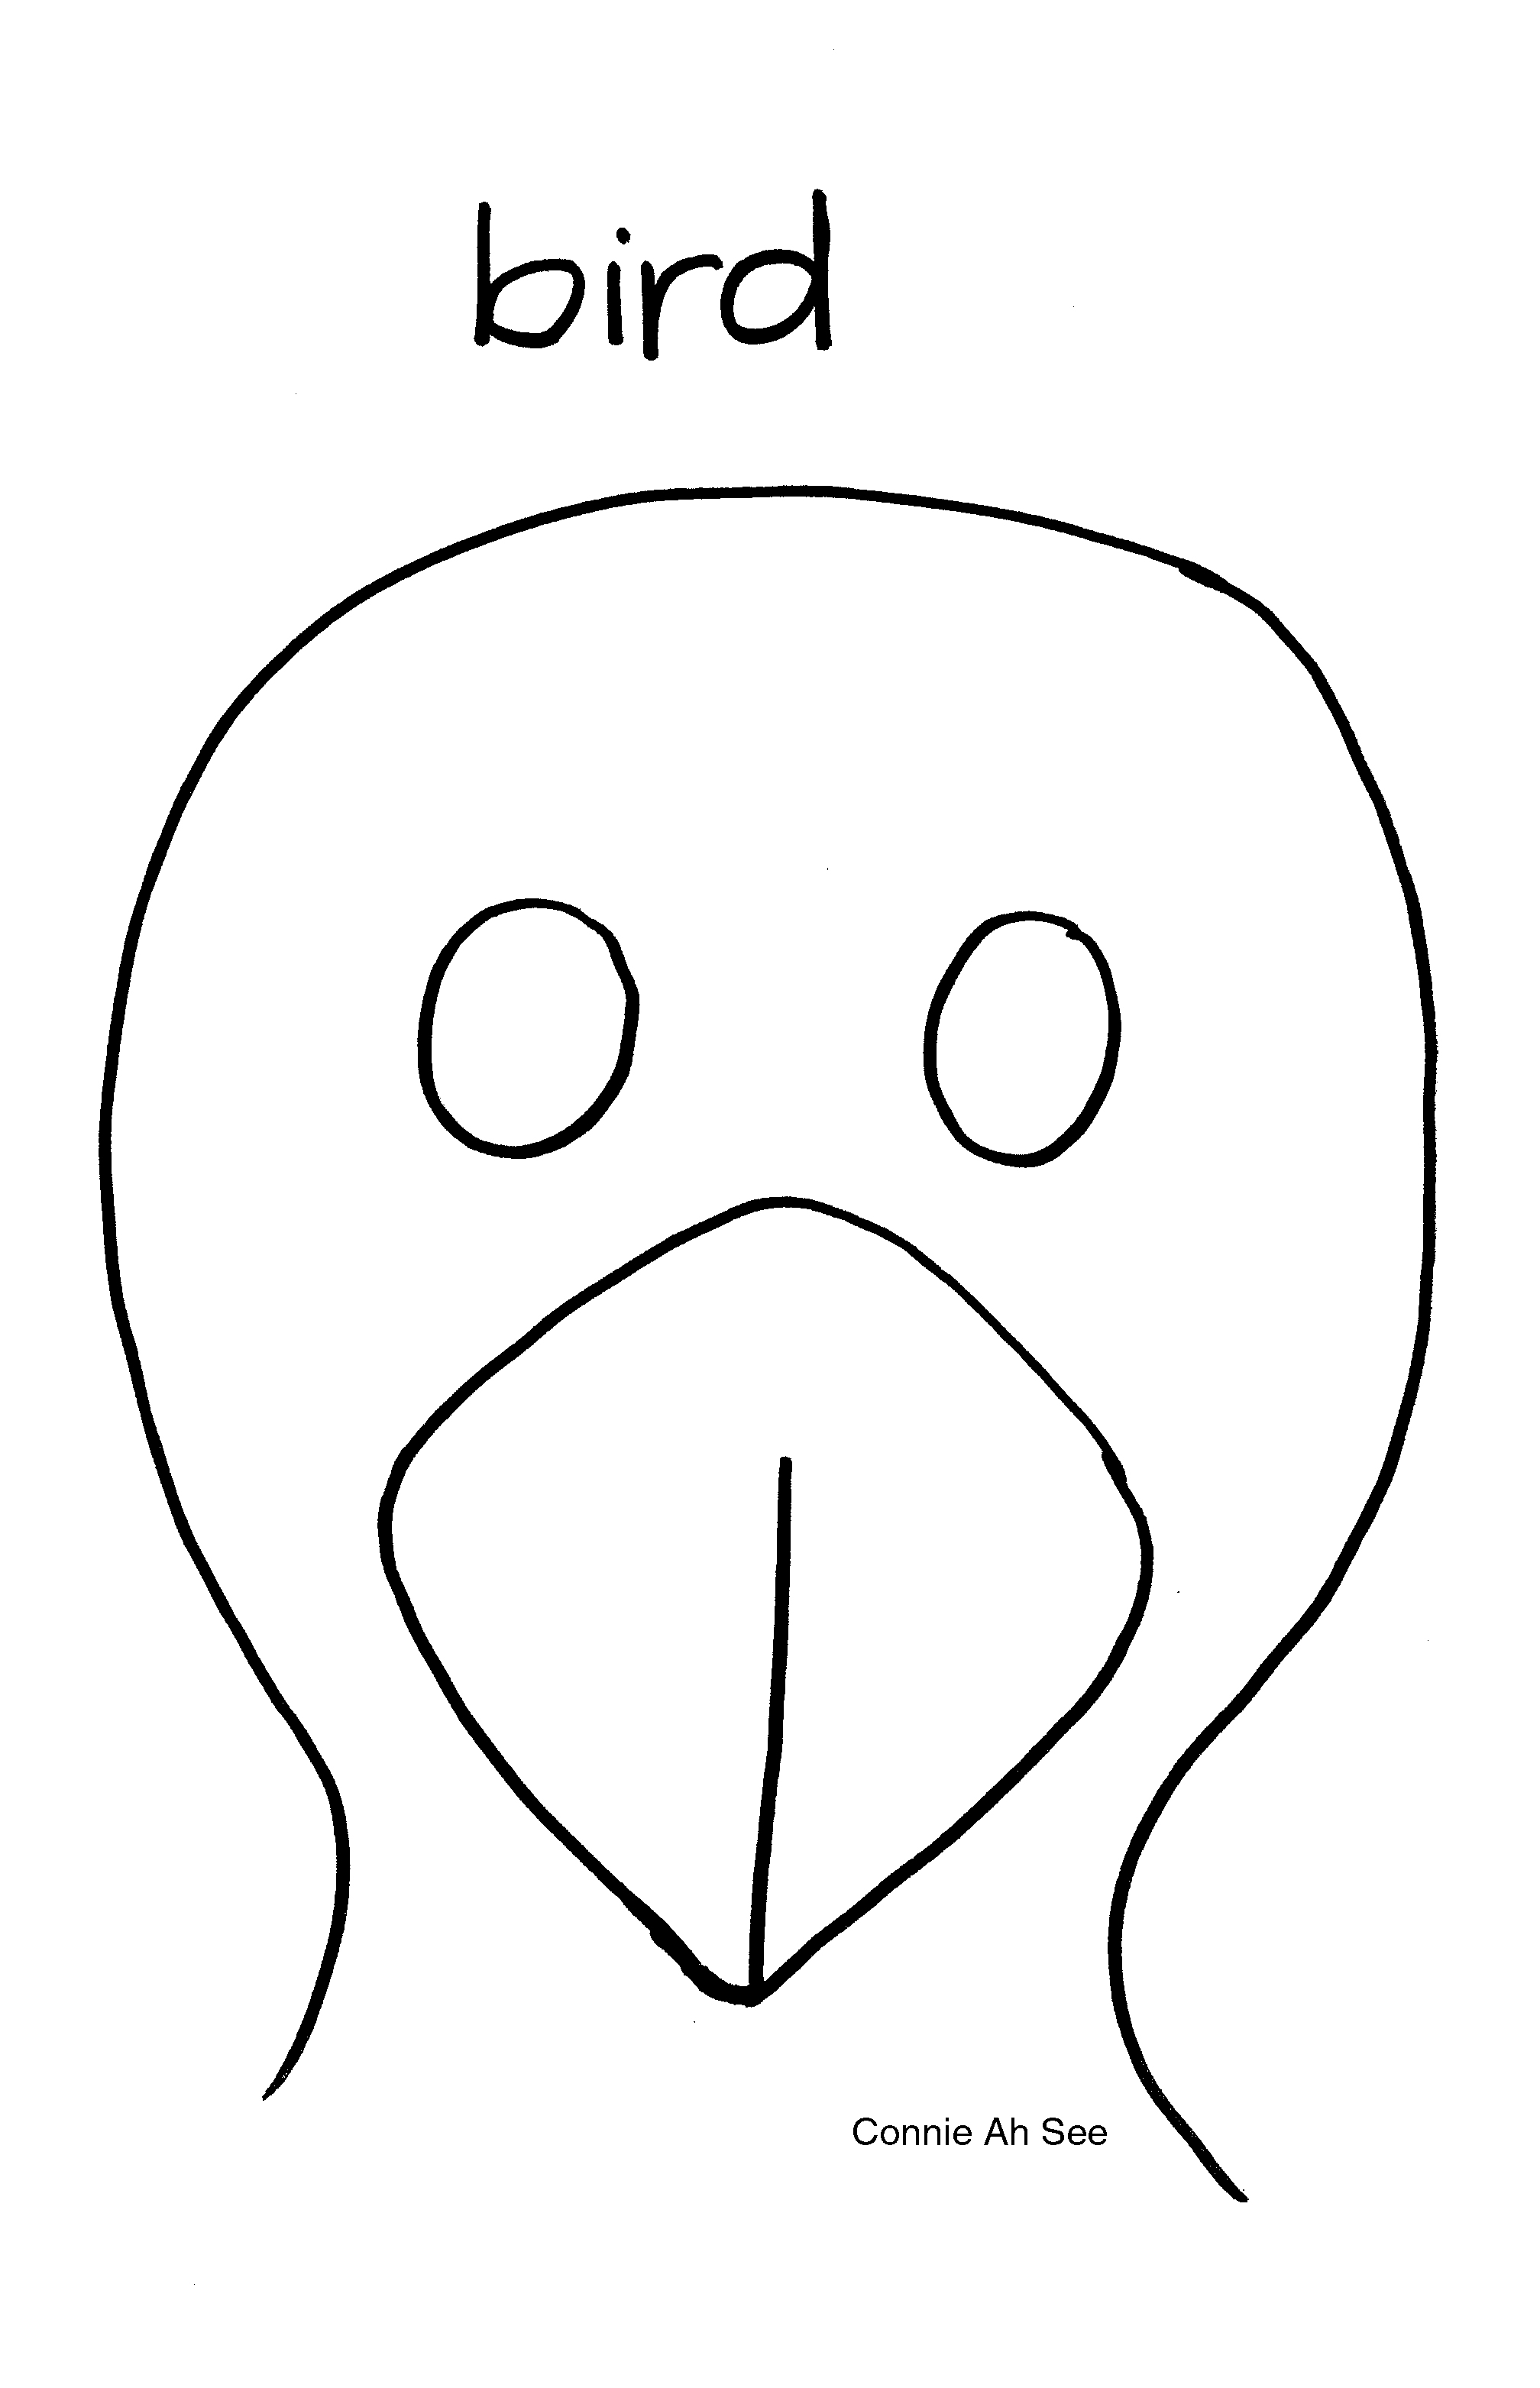 Blank Face Coloring Page Getcoloringpages Mask Templates - Animal Face Masks Printable Free